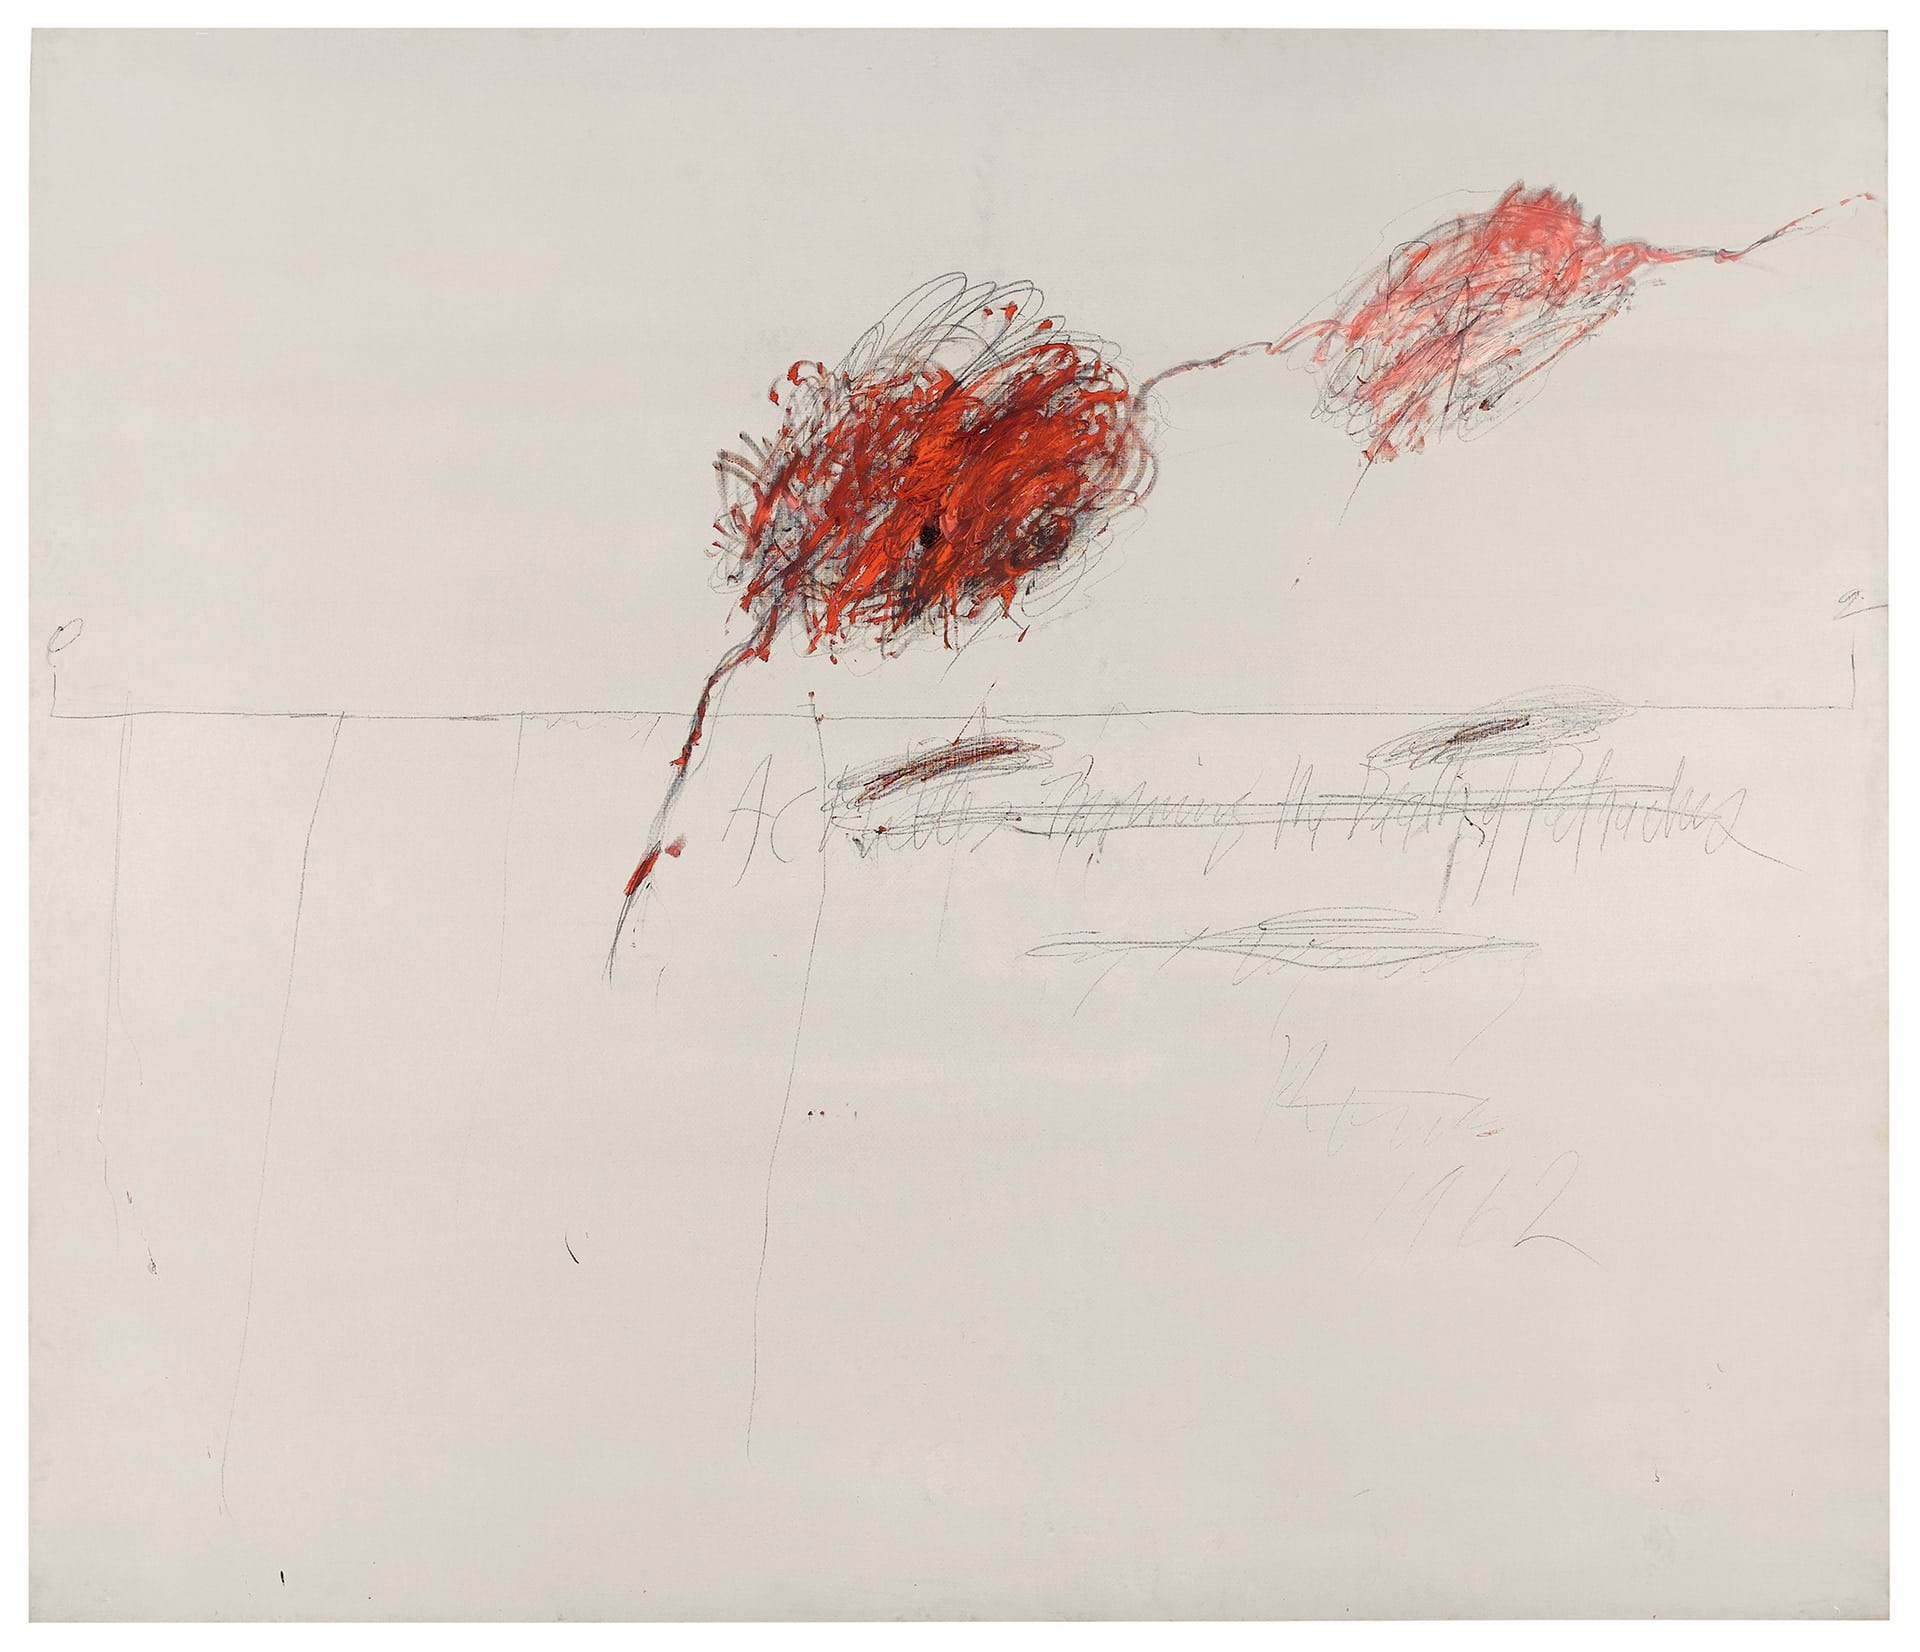 Cy Twombly's Achilles Mourning the Death of Patroclus (1962)